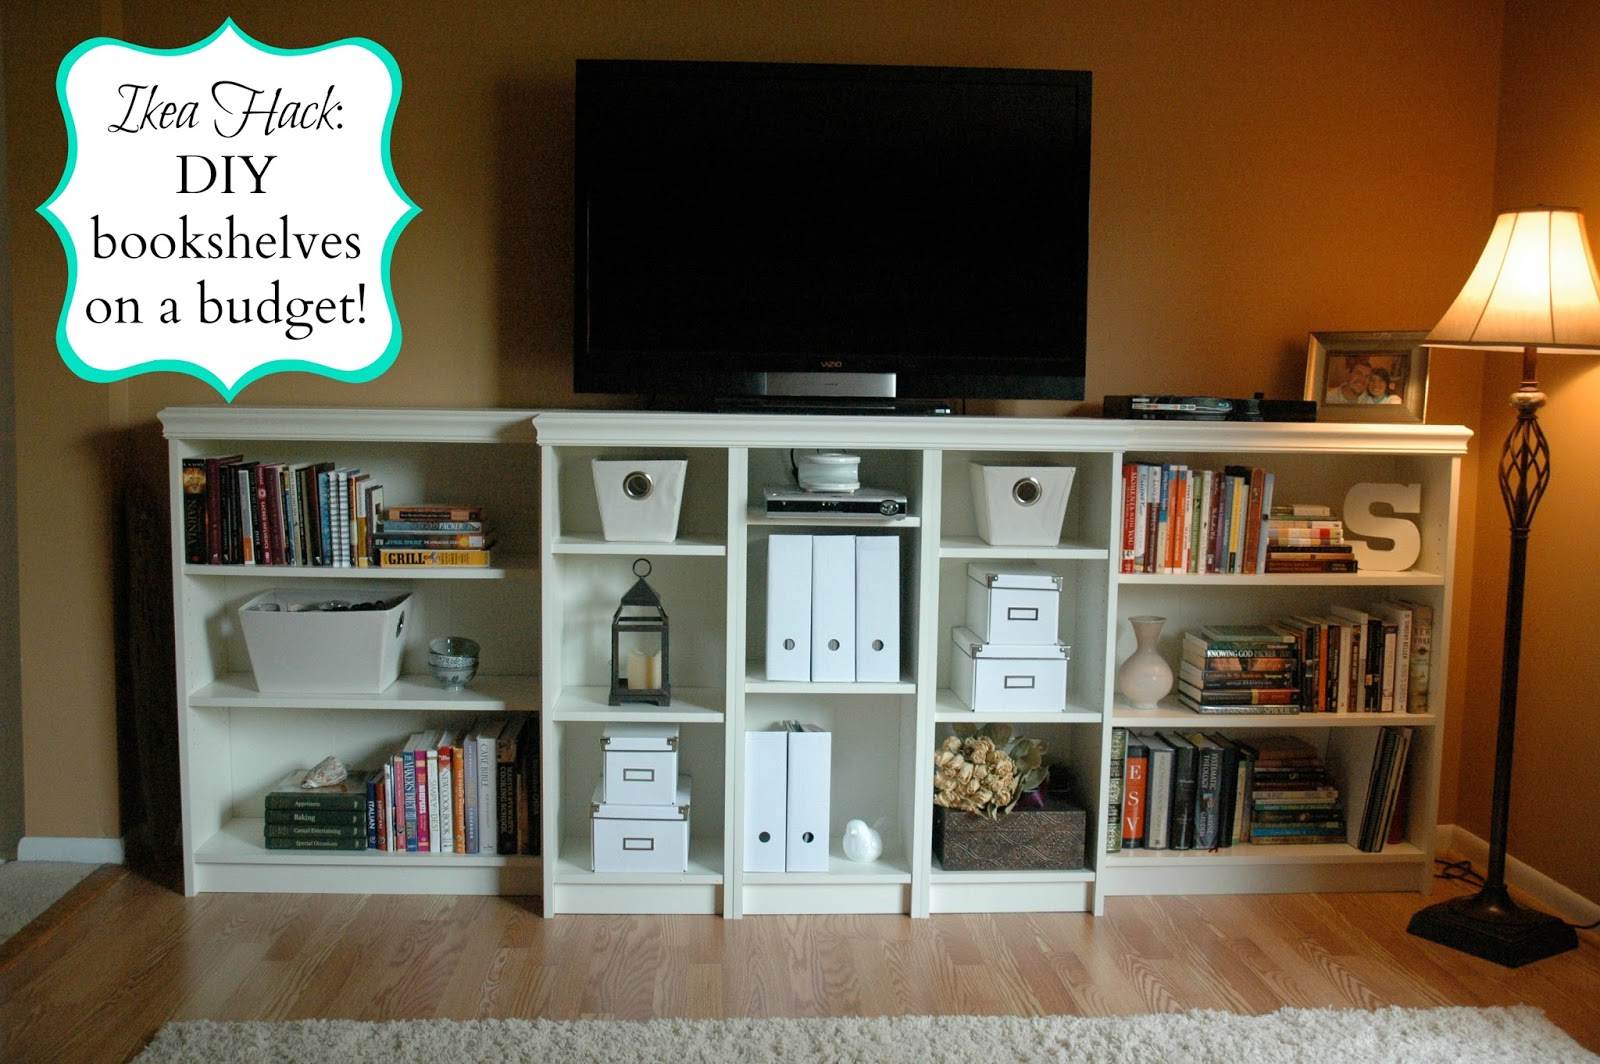 ikea hack archives april swiger. Black Bedroom Furniture Sets. Home Design Ideas